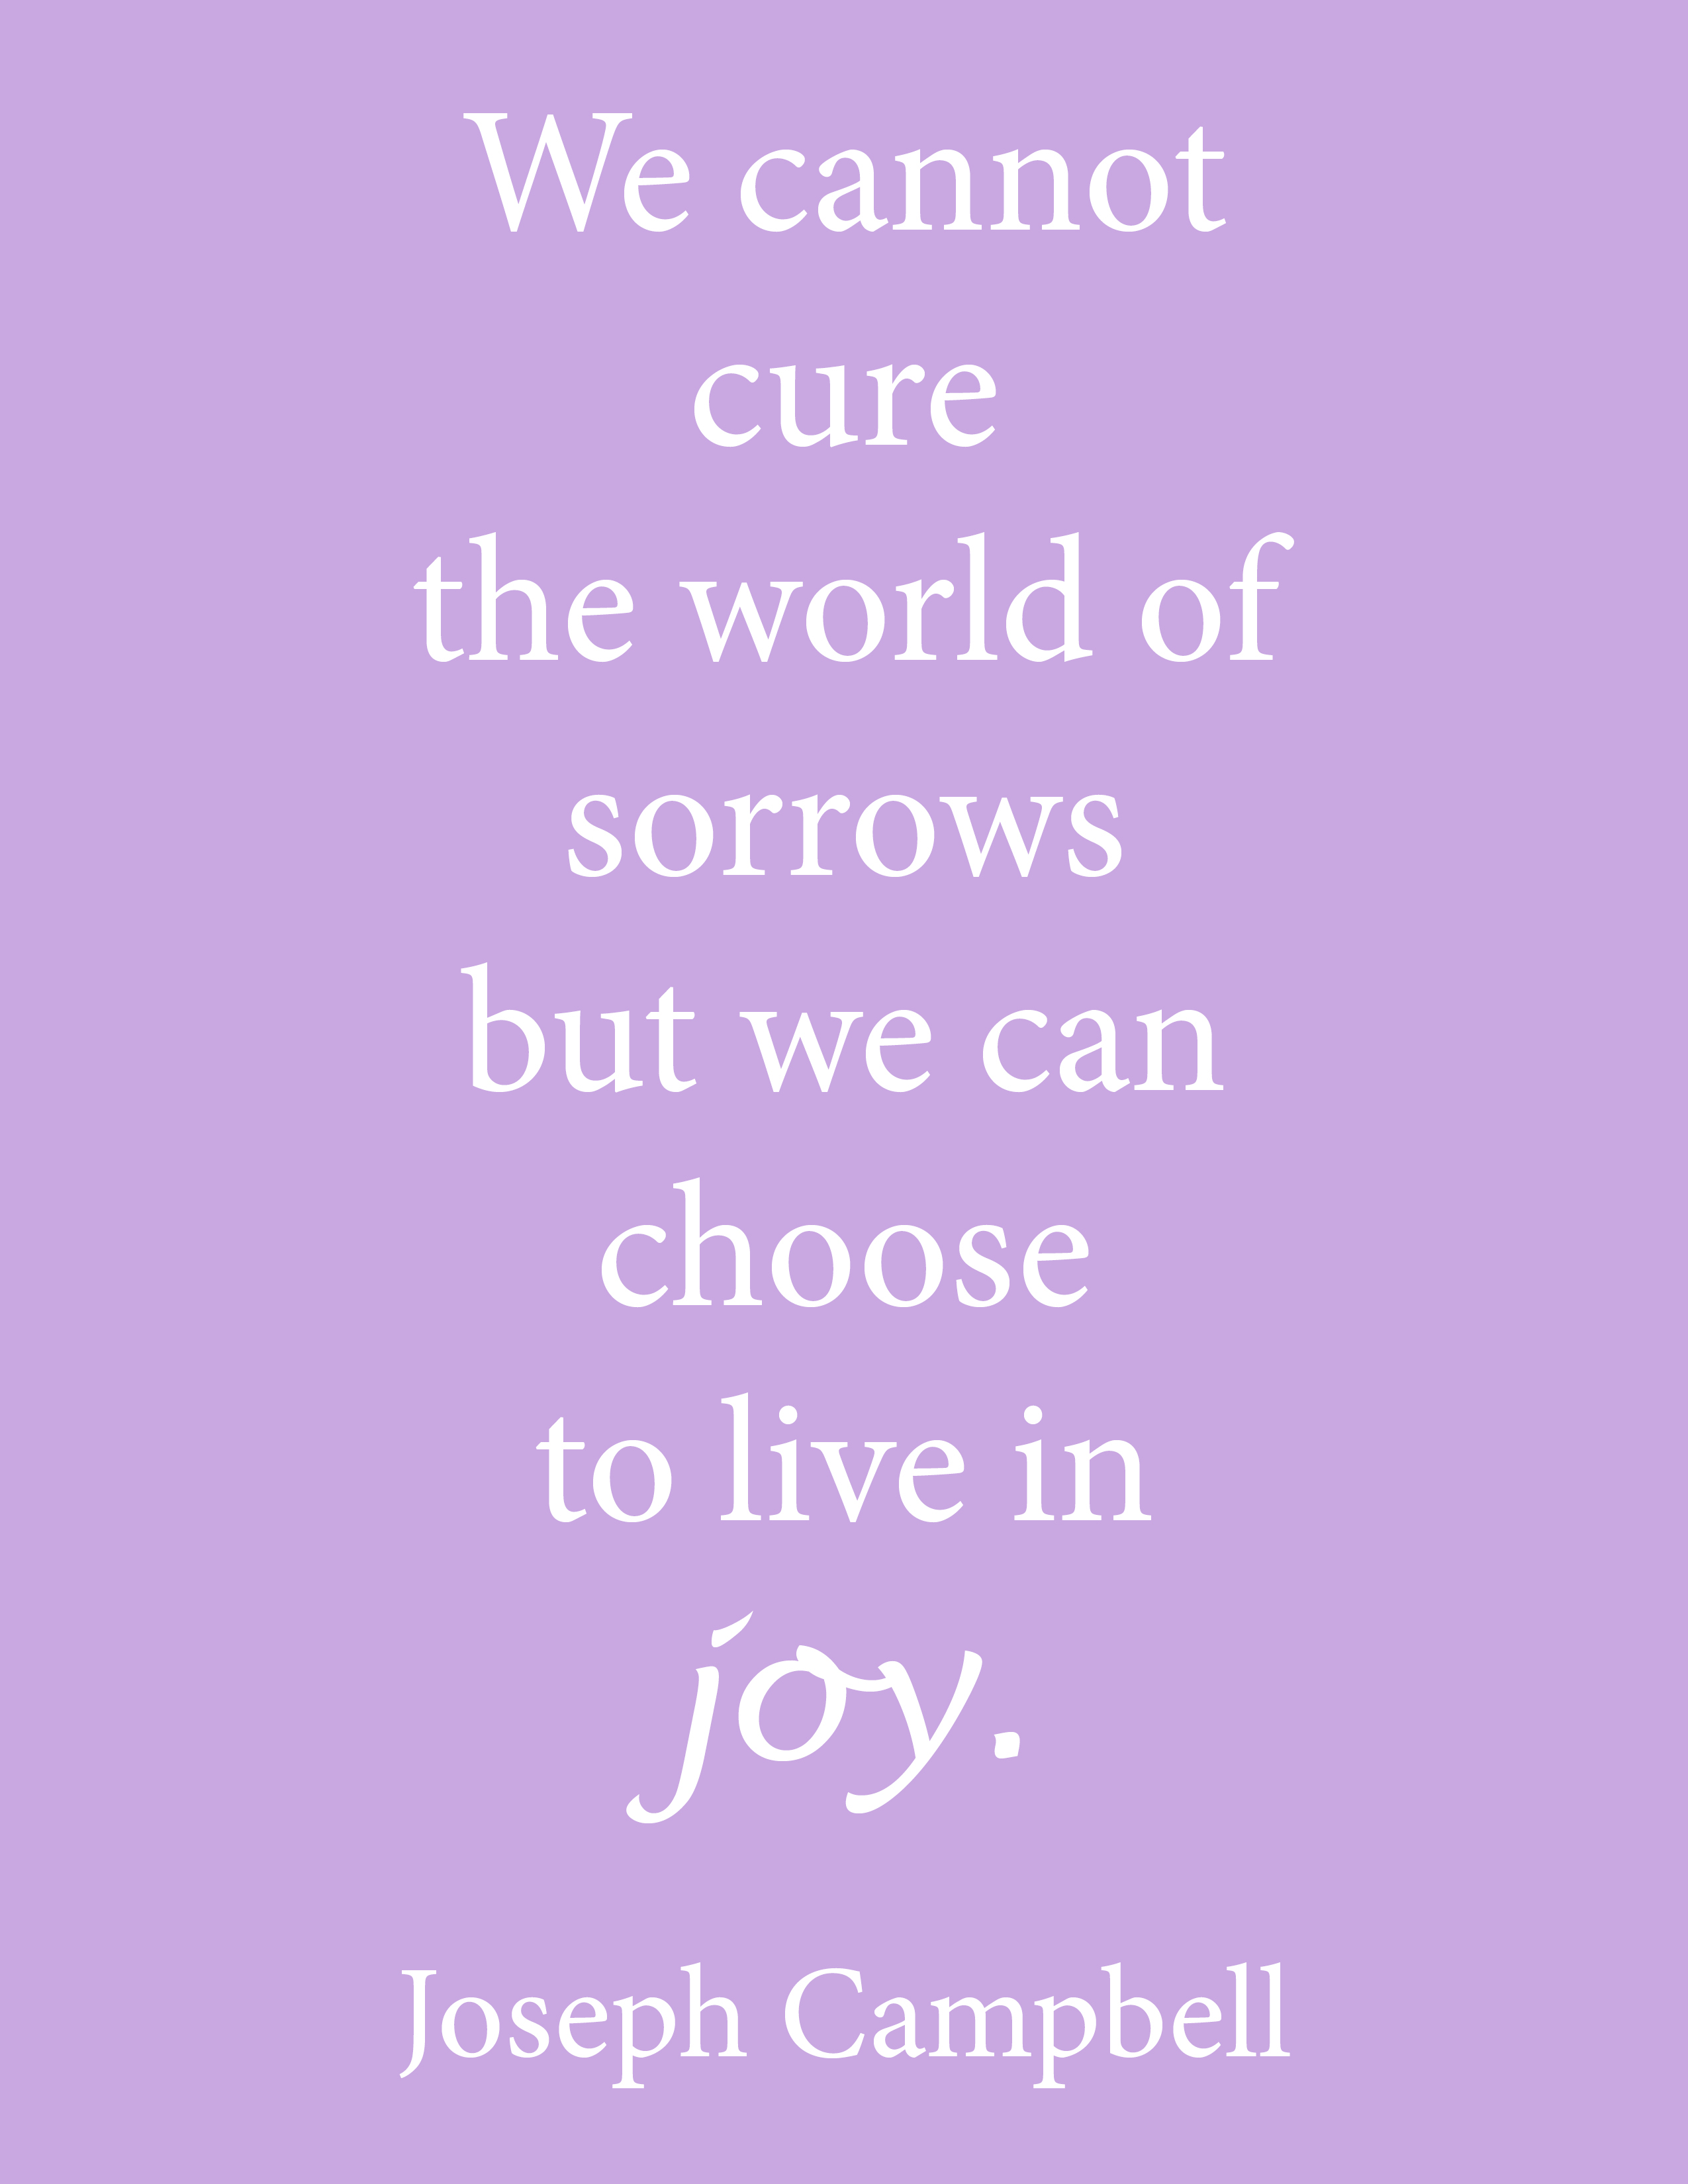 Inspirational Joseph Campbell Quote